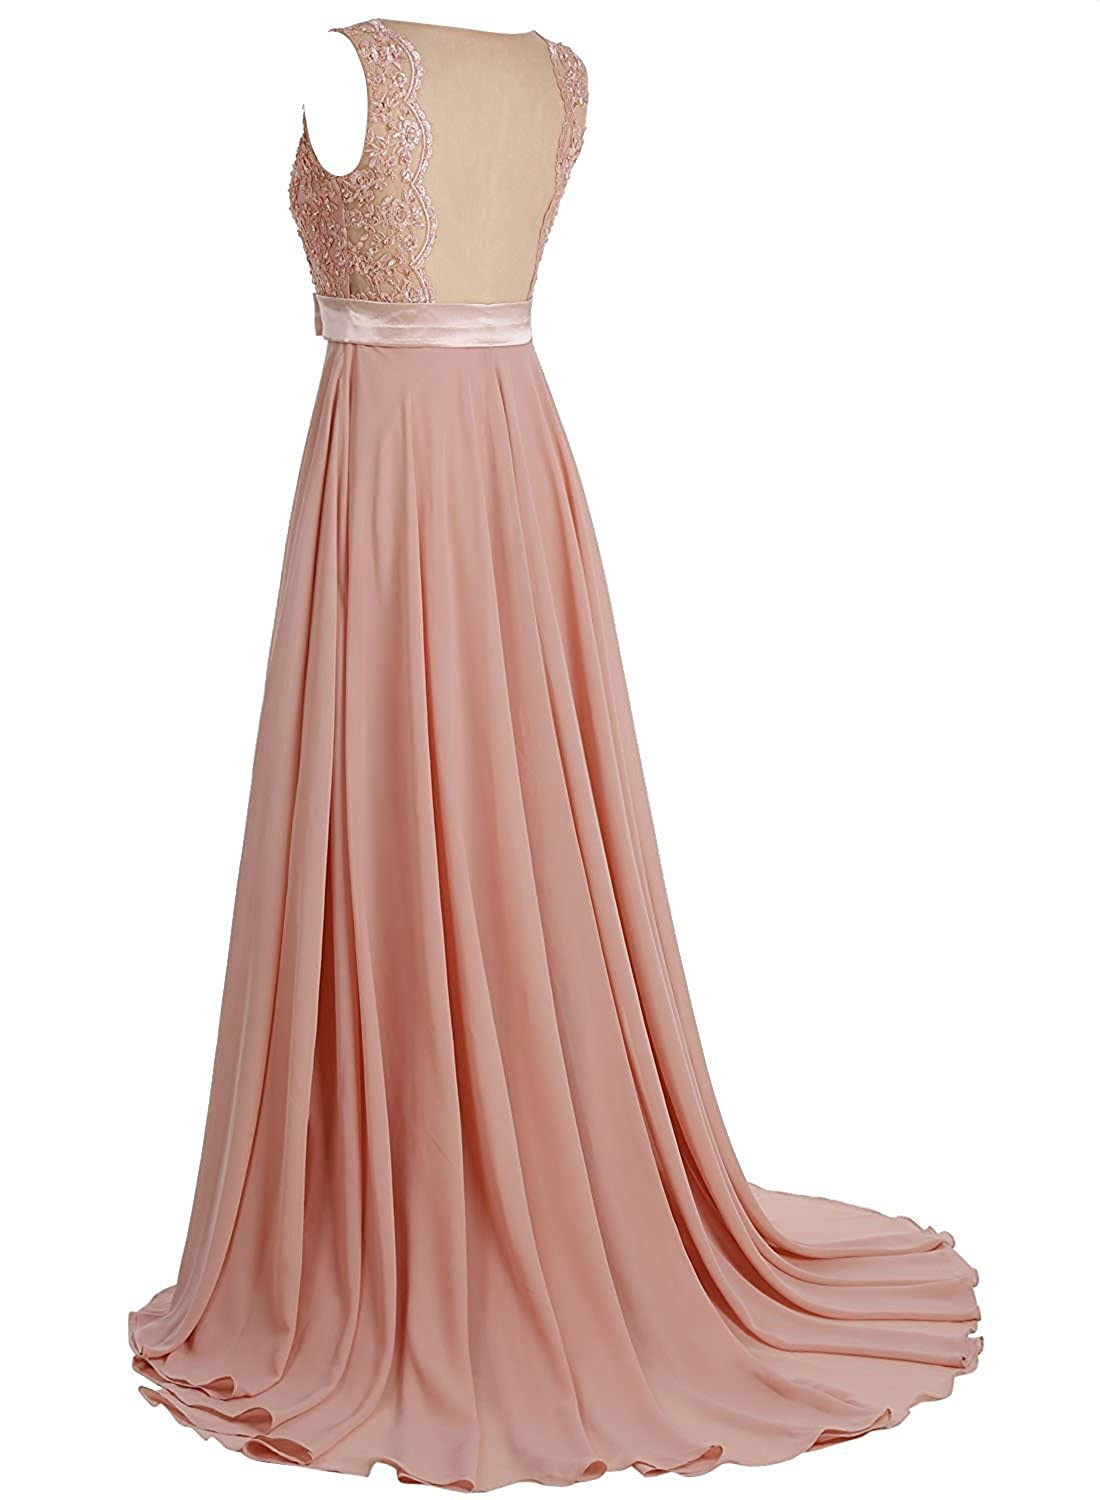 Victoria Prom Elegant Long Prom Gown Lace Bridal Dress with Flowing Chiffon Skirt at Amazon Womens Clothing store: